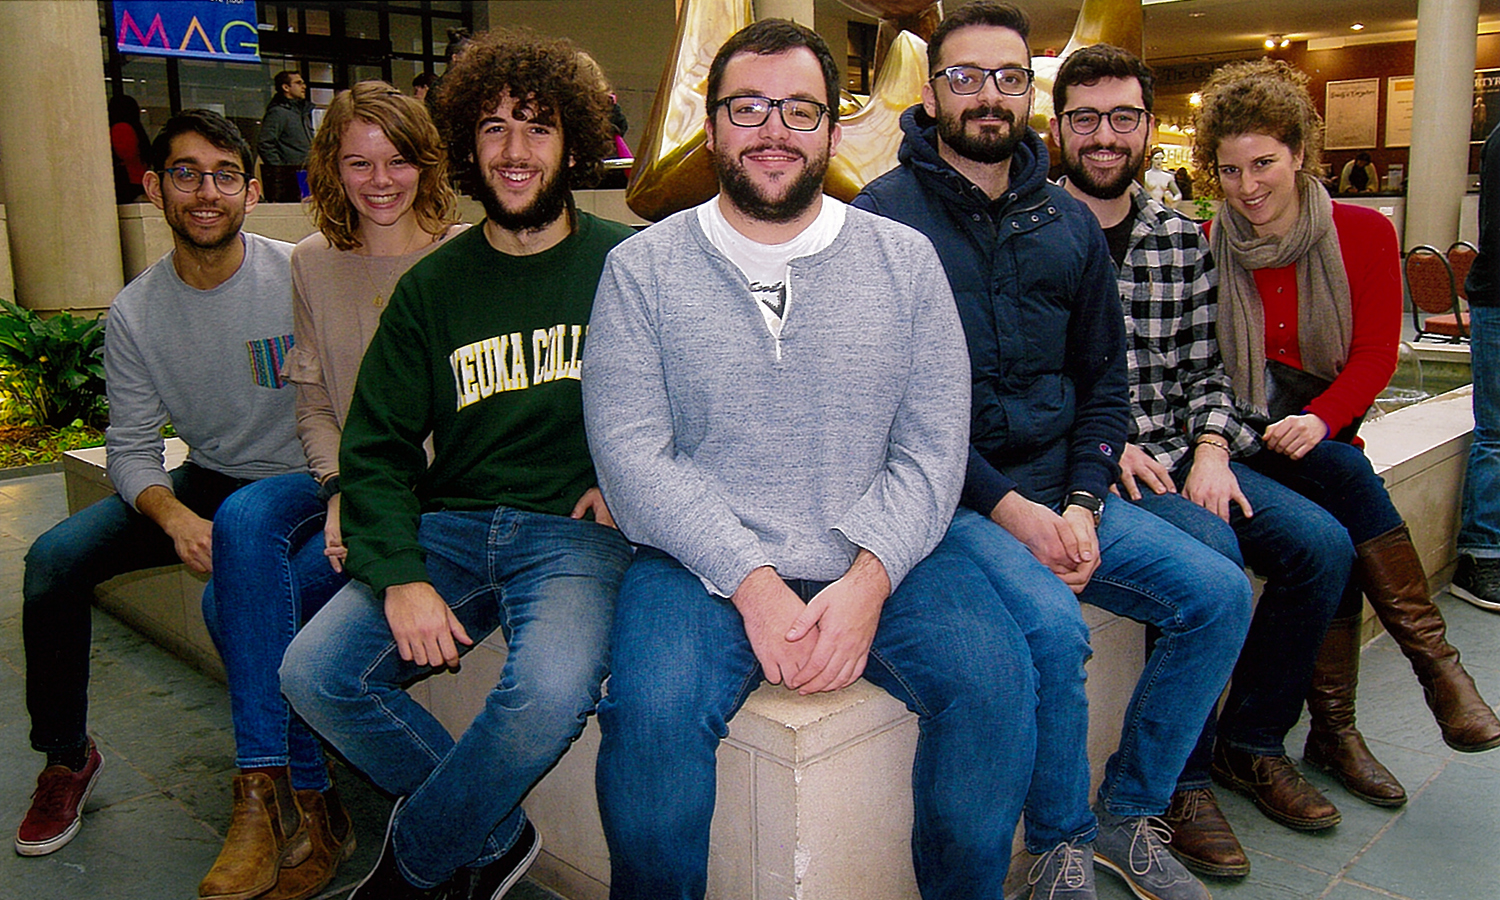 Kevin Collado '18, Ren Workman '18 Alejandro Rico, Spanish Fulbright teaching assistant at Keuka CollegeJuan Francisco Amand de Mendieta, Spanish Fulbright teaching assistant at Merrimack College, HWS Arabic Fulbright Teaching Fellow Augar Khoshaba and Graham Hughes '17 pose for a photo after a visit to Black History Month exhibit at the Memorial Art Gallery in Rochester, N.Y.